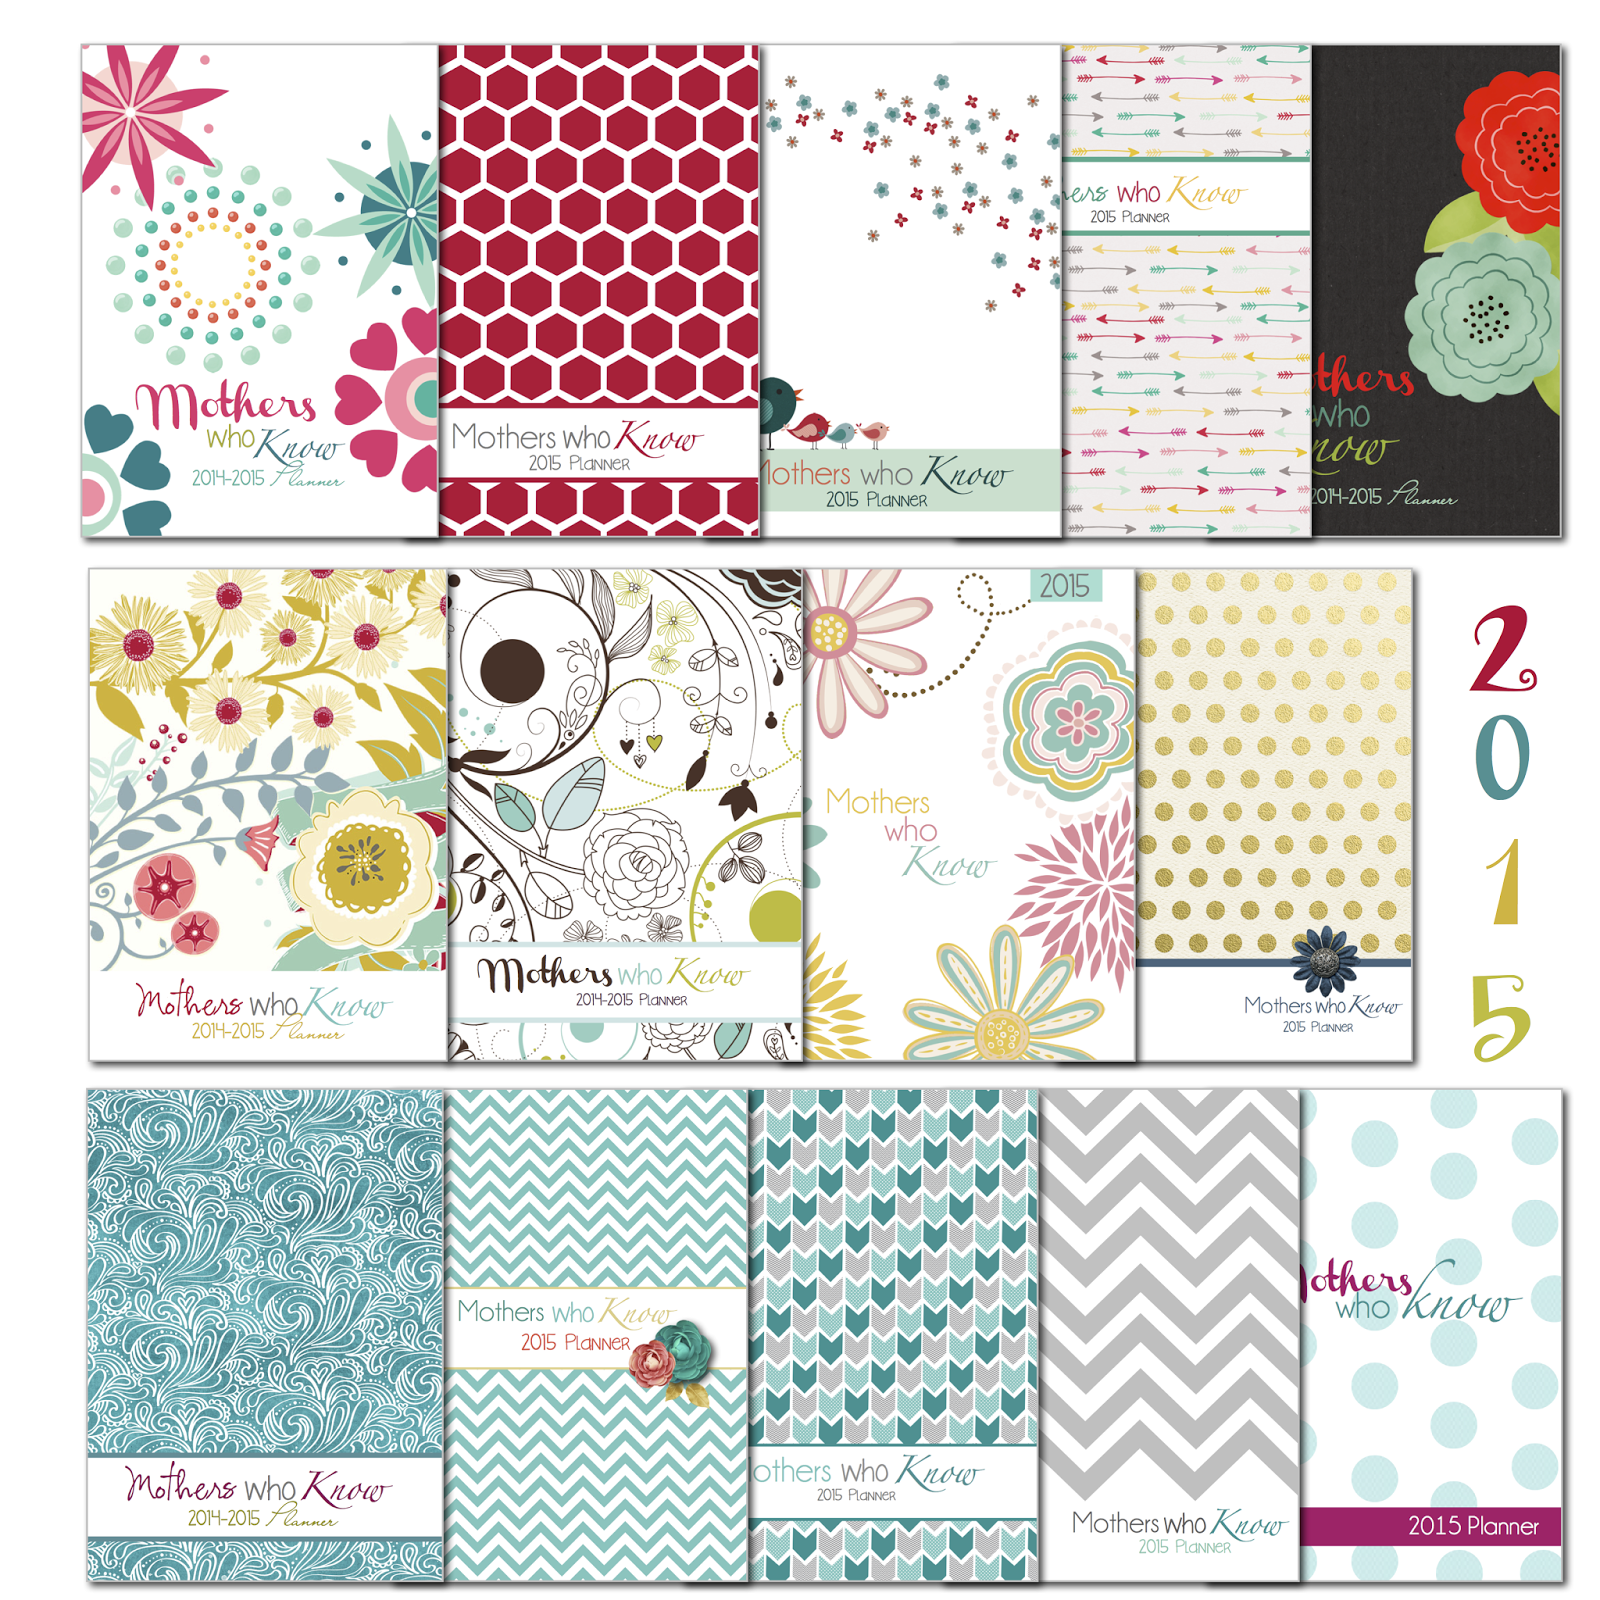 Month At A Glance Budget Sheets Printable | Calendar Template 2016